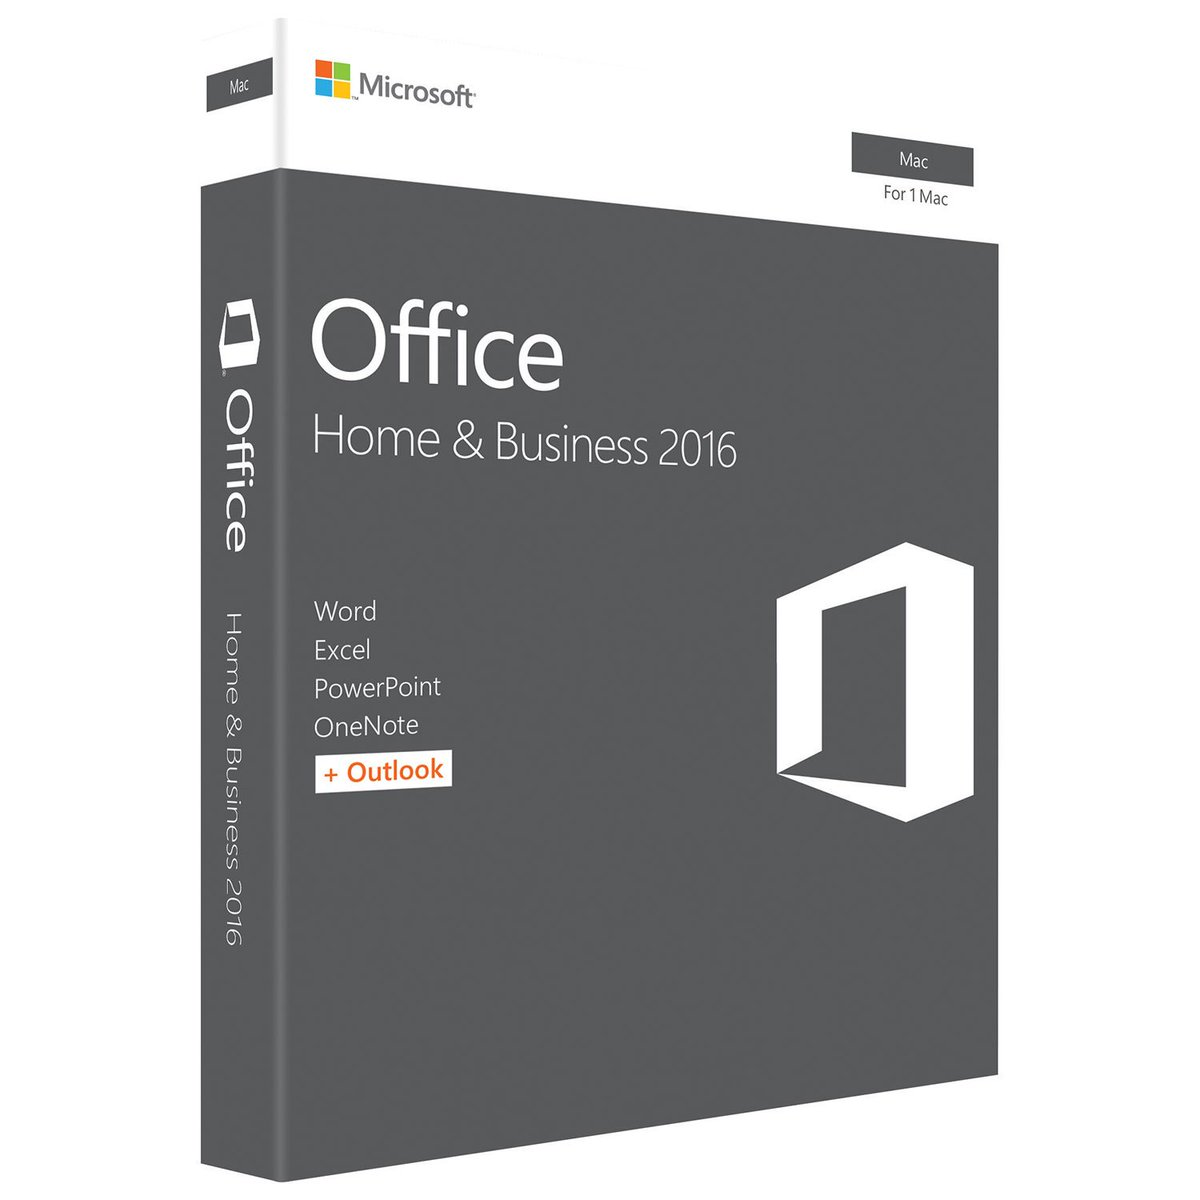 C25 Store On Twitter تخفيض على Office 2016 Home And